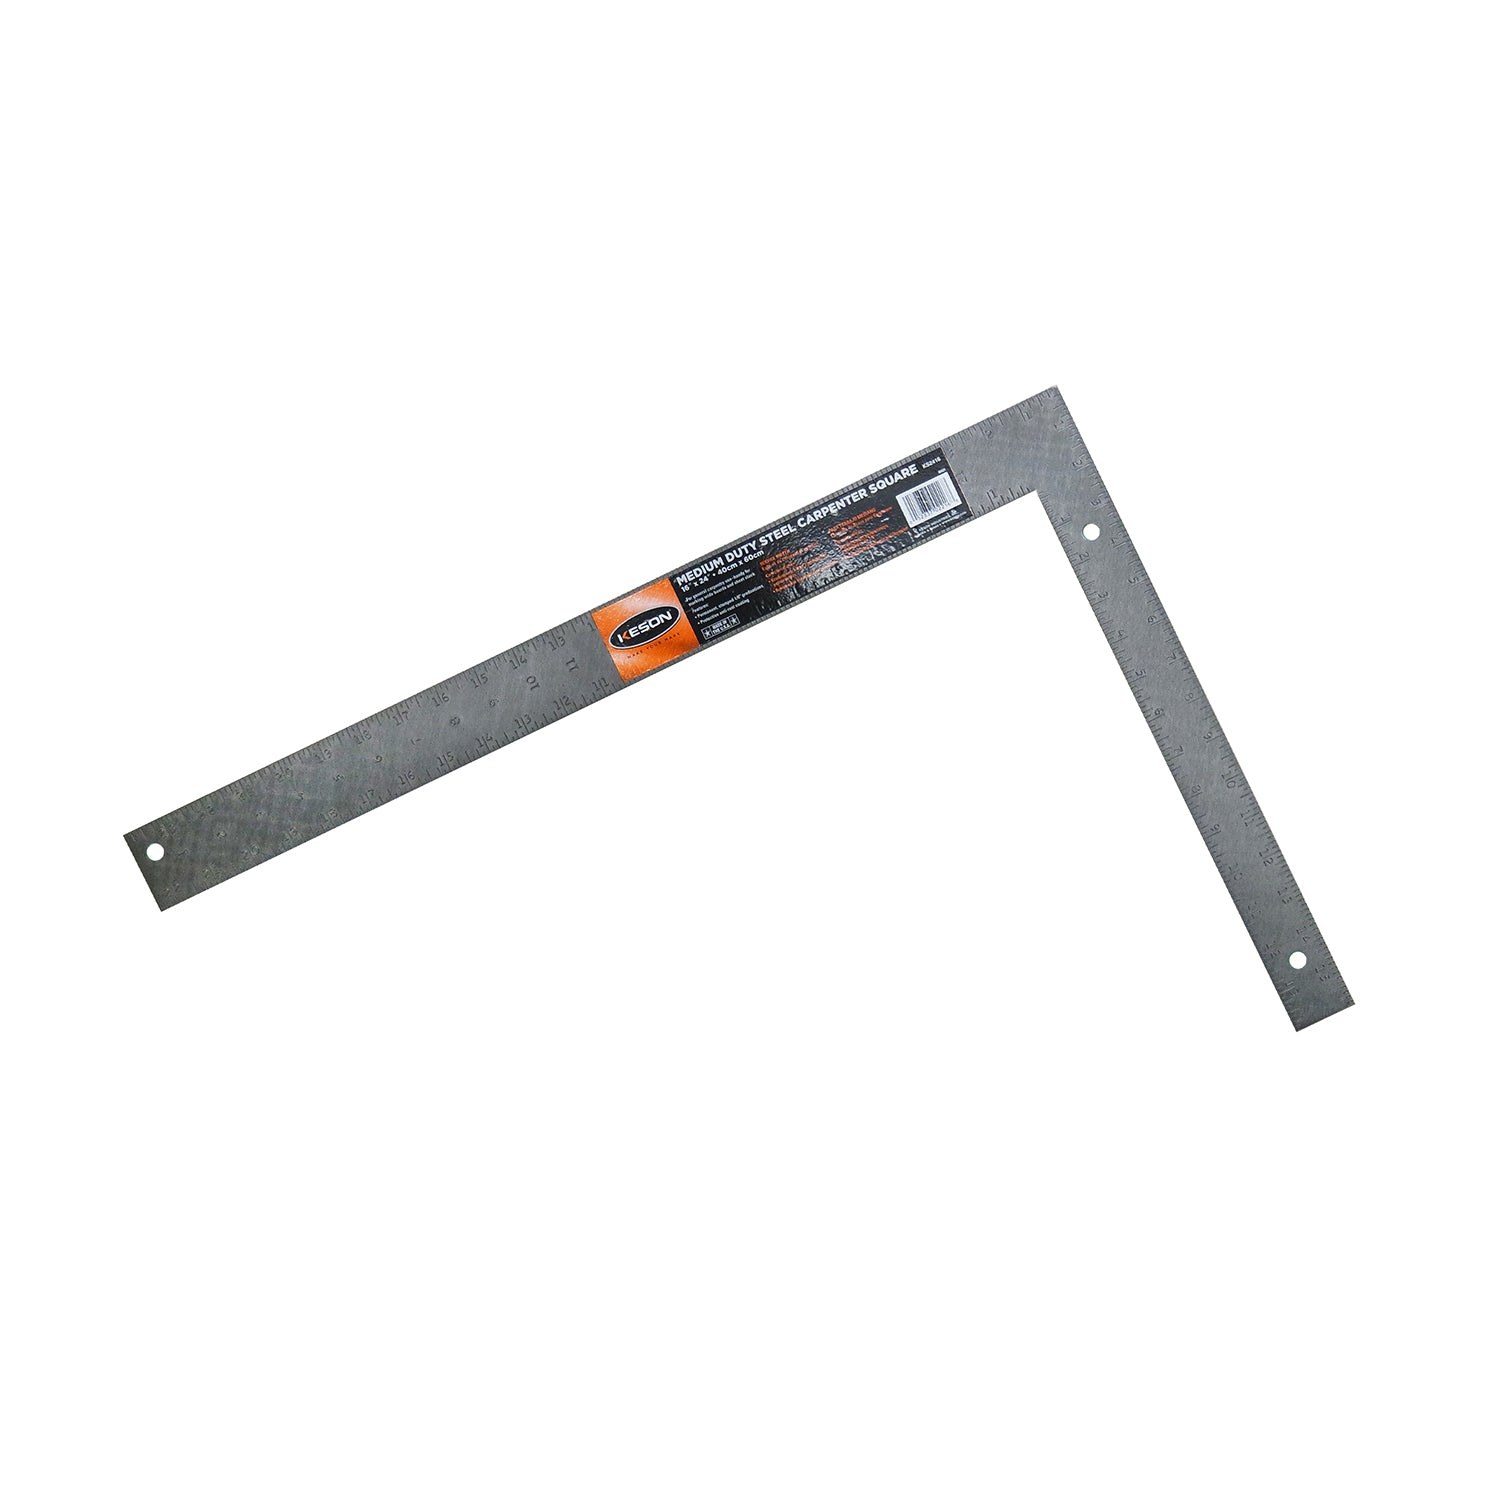 "Keson Steel Carpenter Square 16"" x 24"" -Measurement Tools- eGPS Solutions Inc."